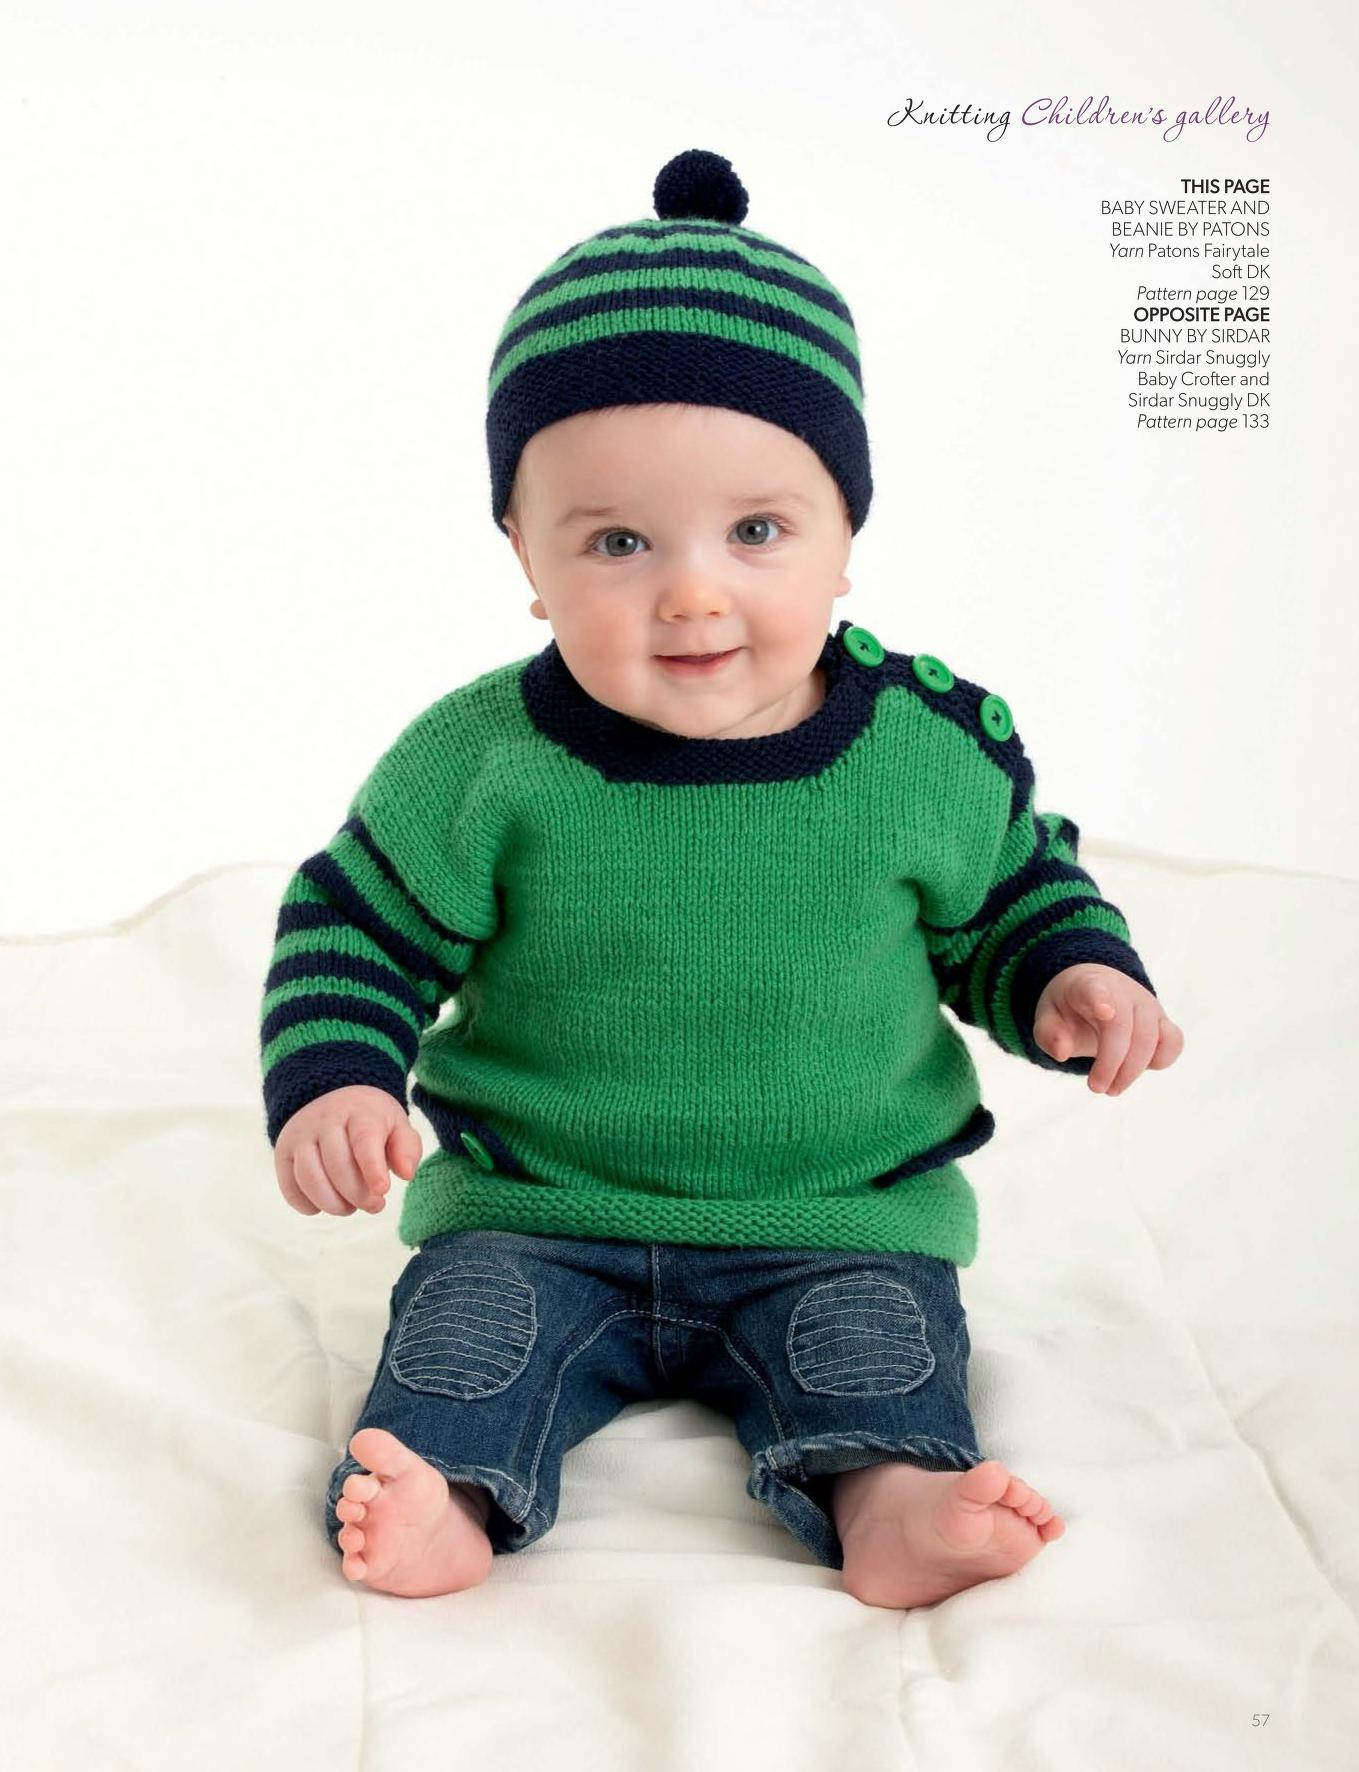 Knitting pattern for a baby sweater and beanie set